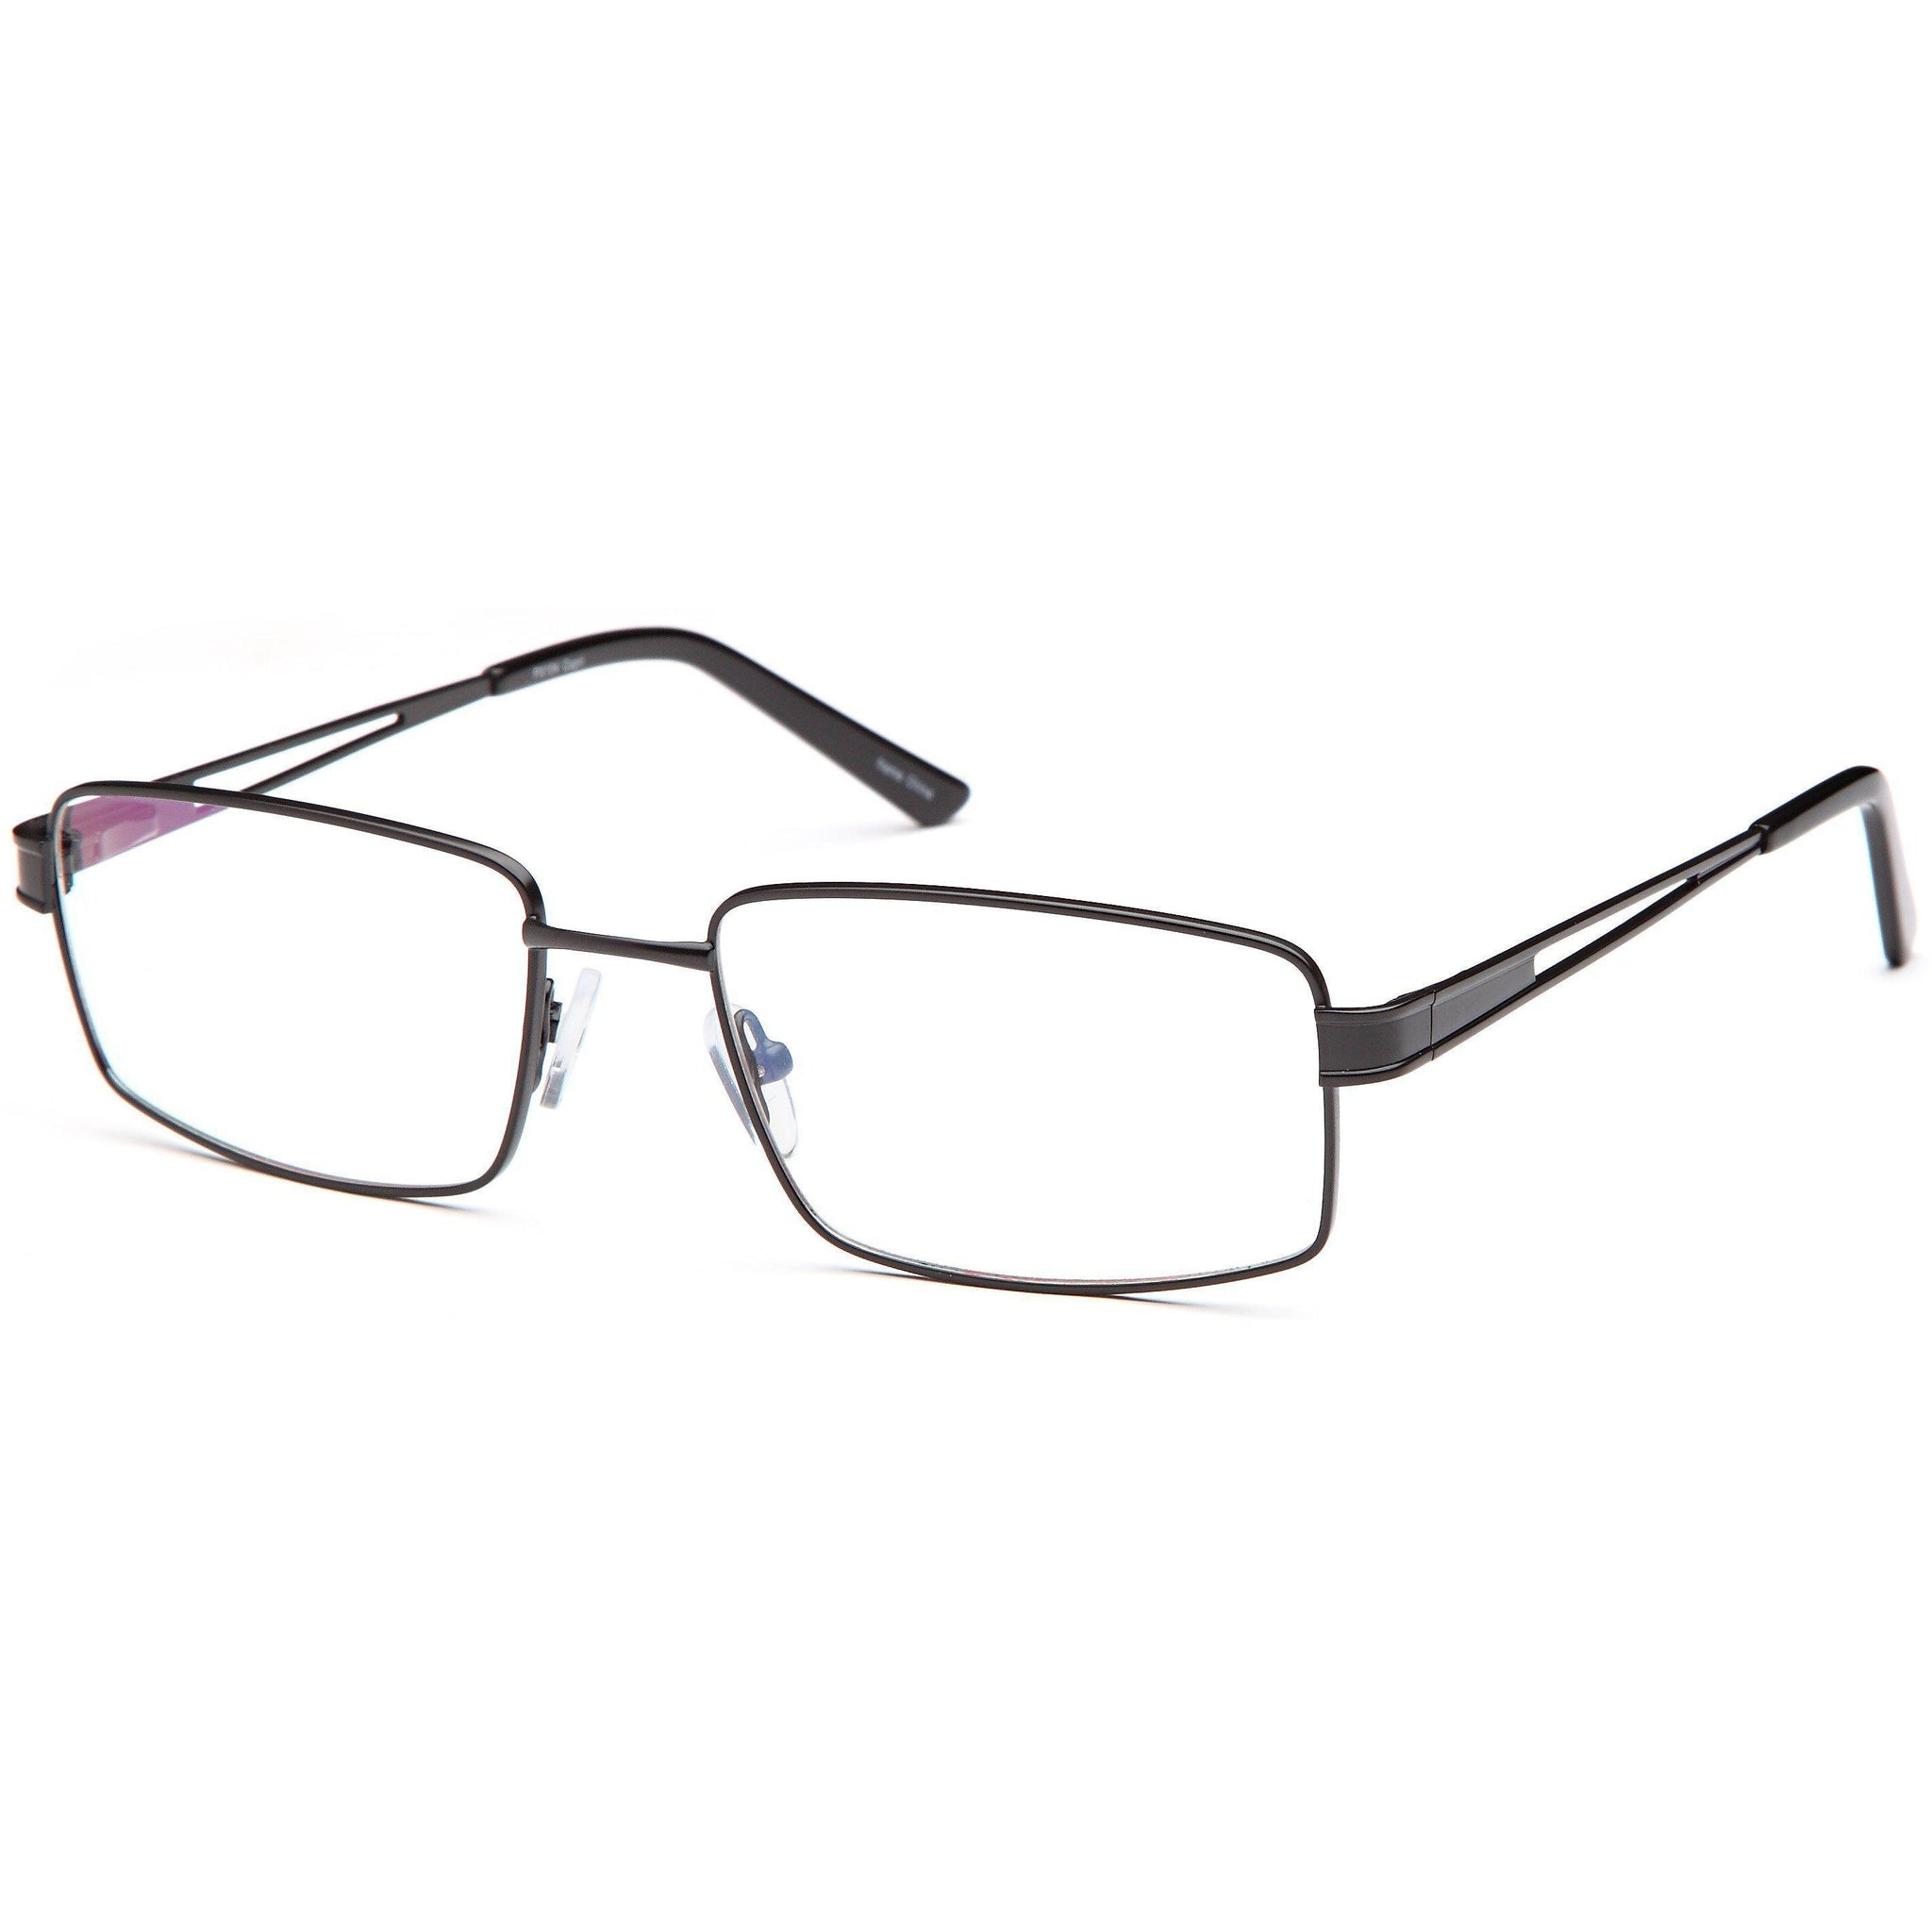 Titanium Prescription Glasses FX 104 Eyeglasses Frame